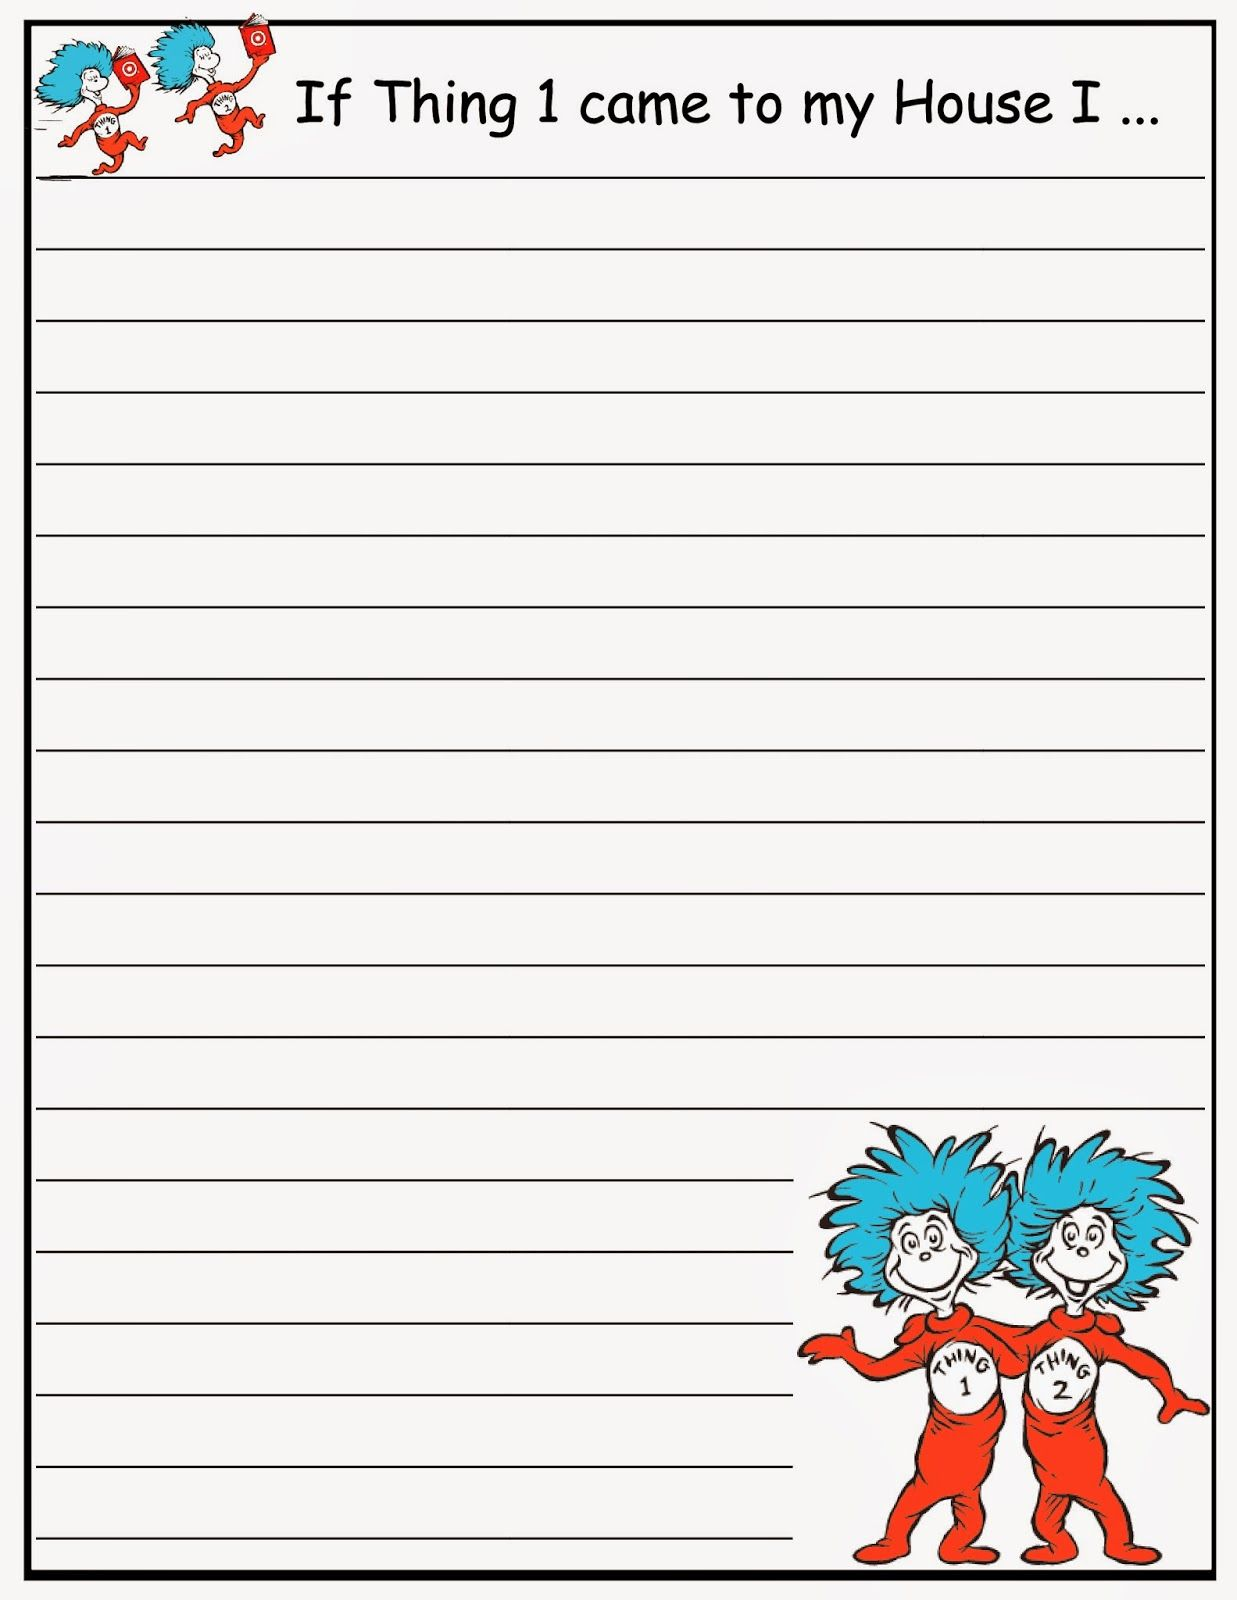 Scrap N Teach Dr Seuss Writing Papers Free Dr Seuss Activities Seuss Classroom Dr Seuss Classroom